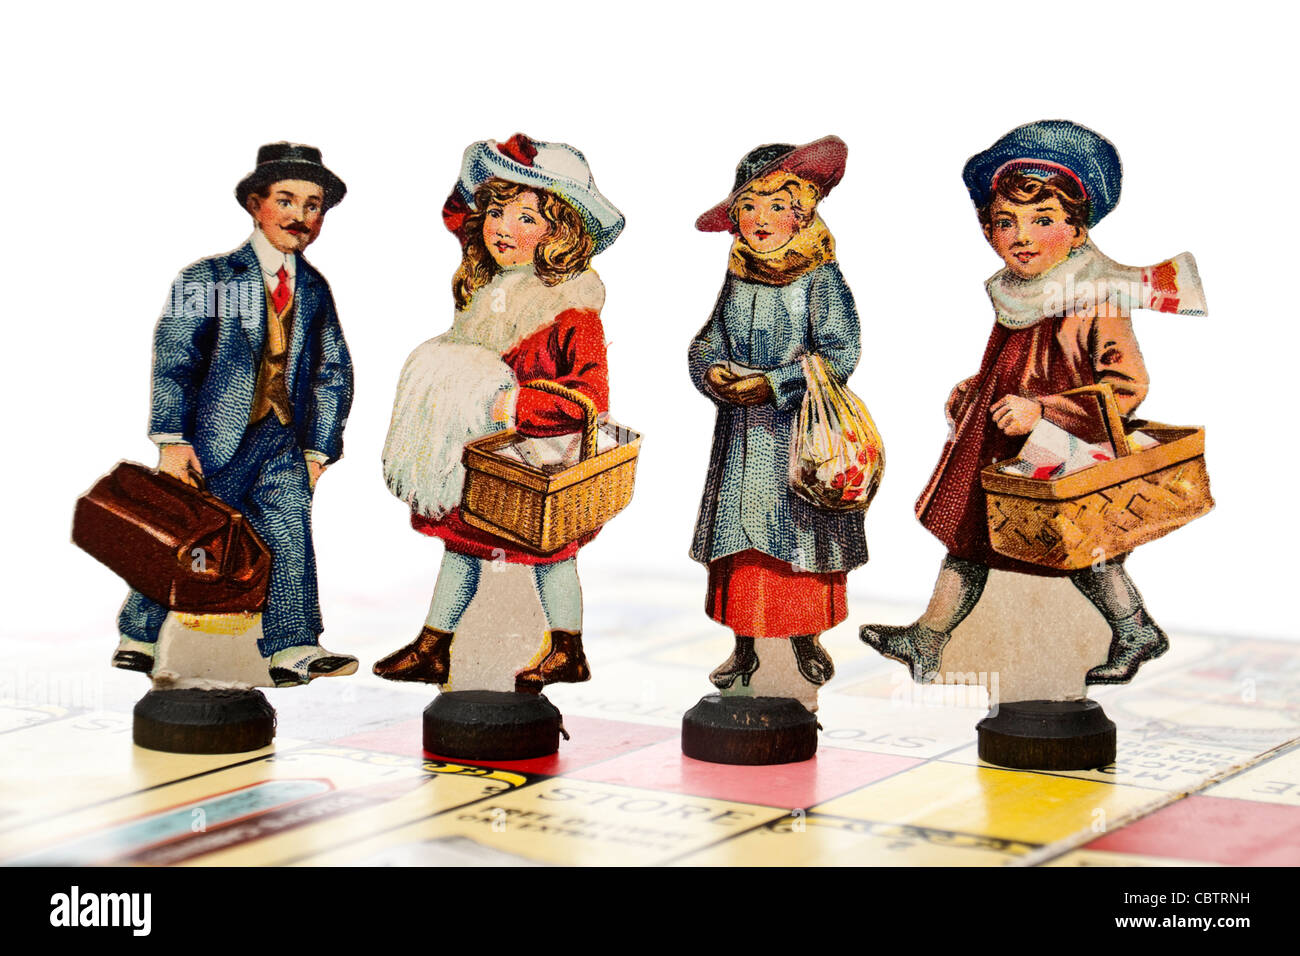 Antique Edwardian (1915) 'Little Shoppers' board game by Gibson Games - Stock Image